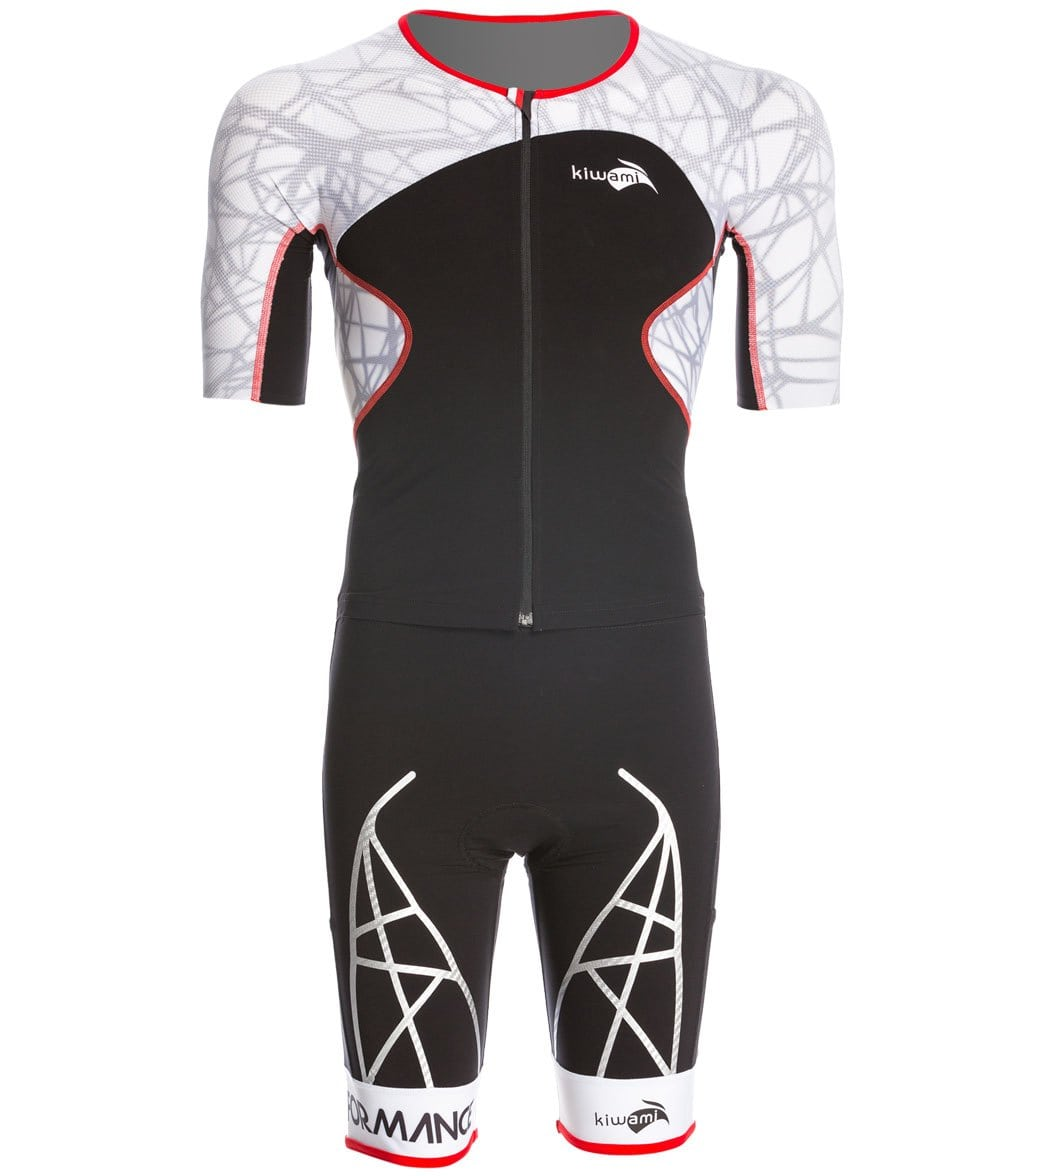 e2ac0902c4f Kiwami Men s Spider LD Aero Trisuit at SwimOutlet.com - Free Shipping